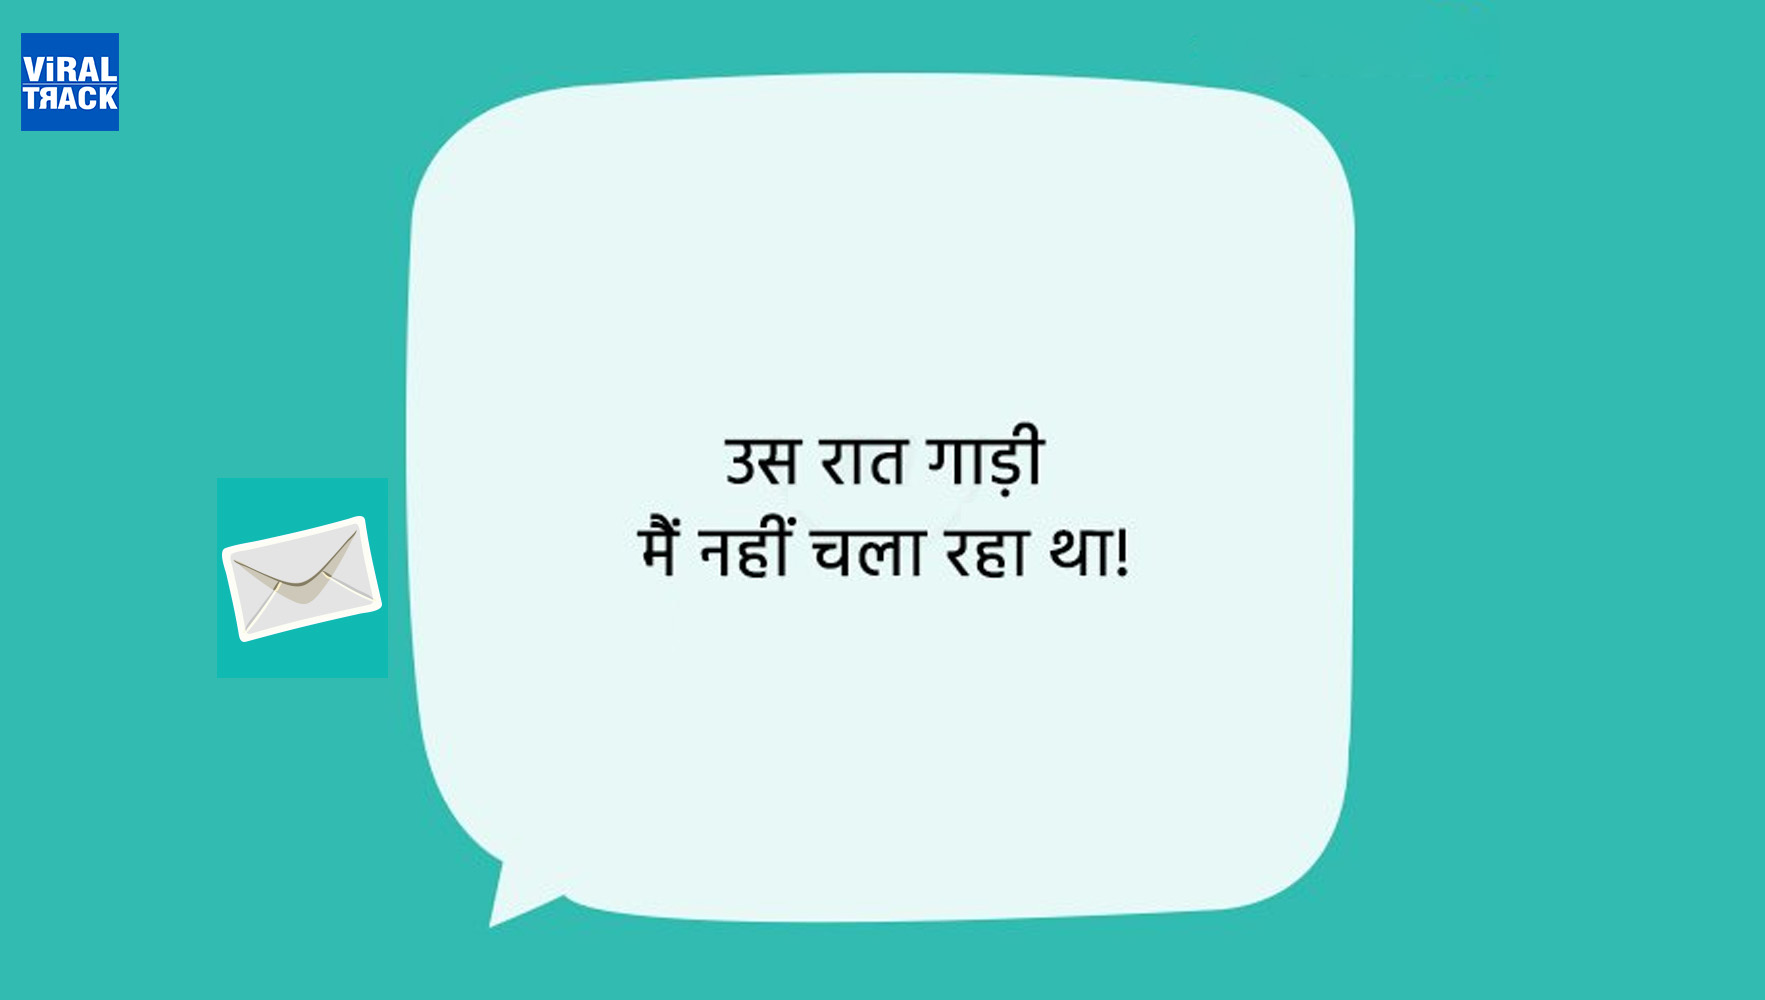 celebs and popular peoples sarahah secret messages